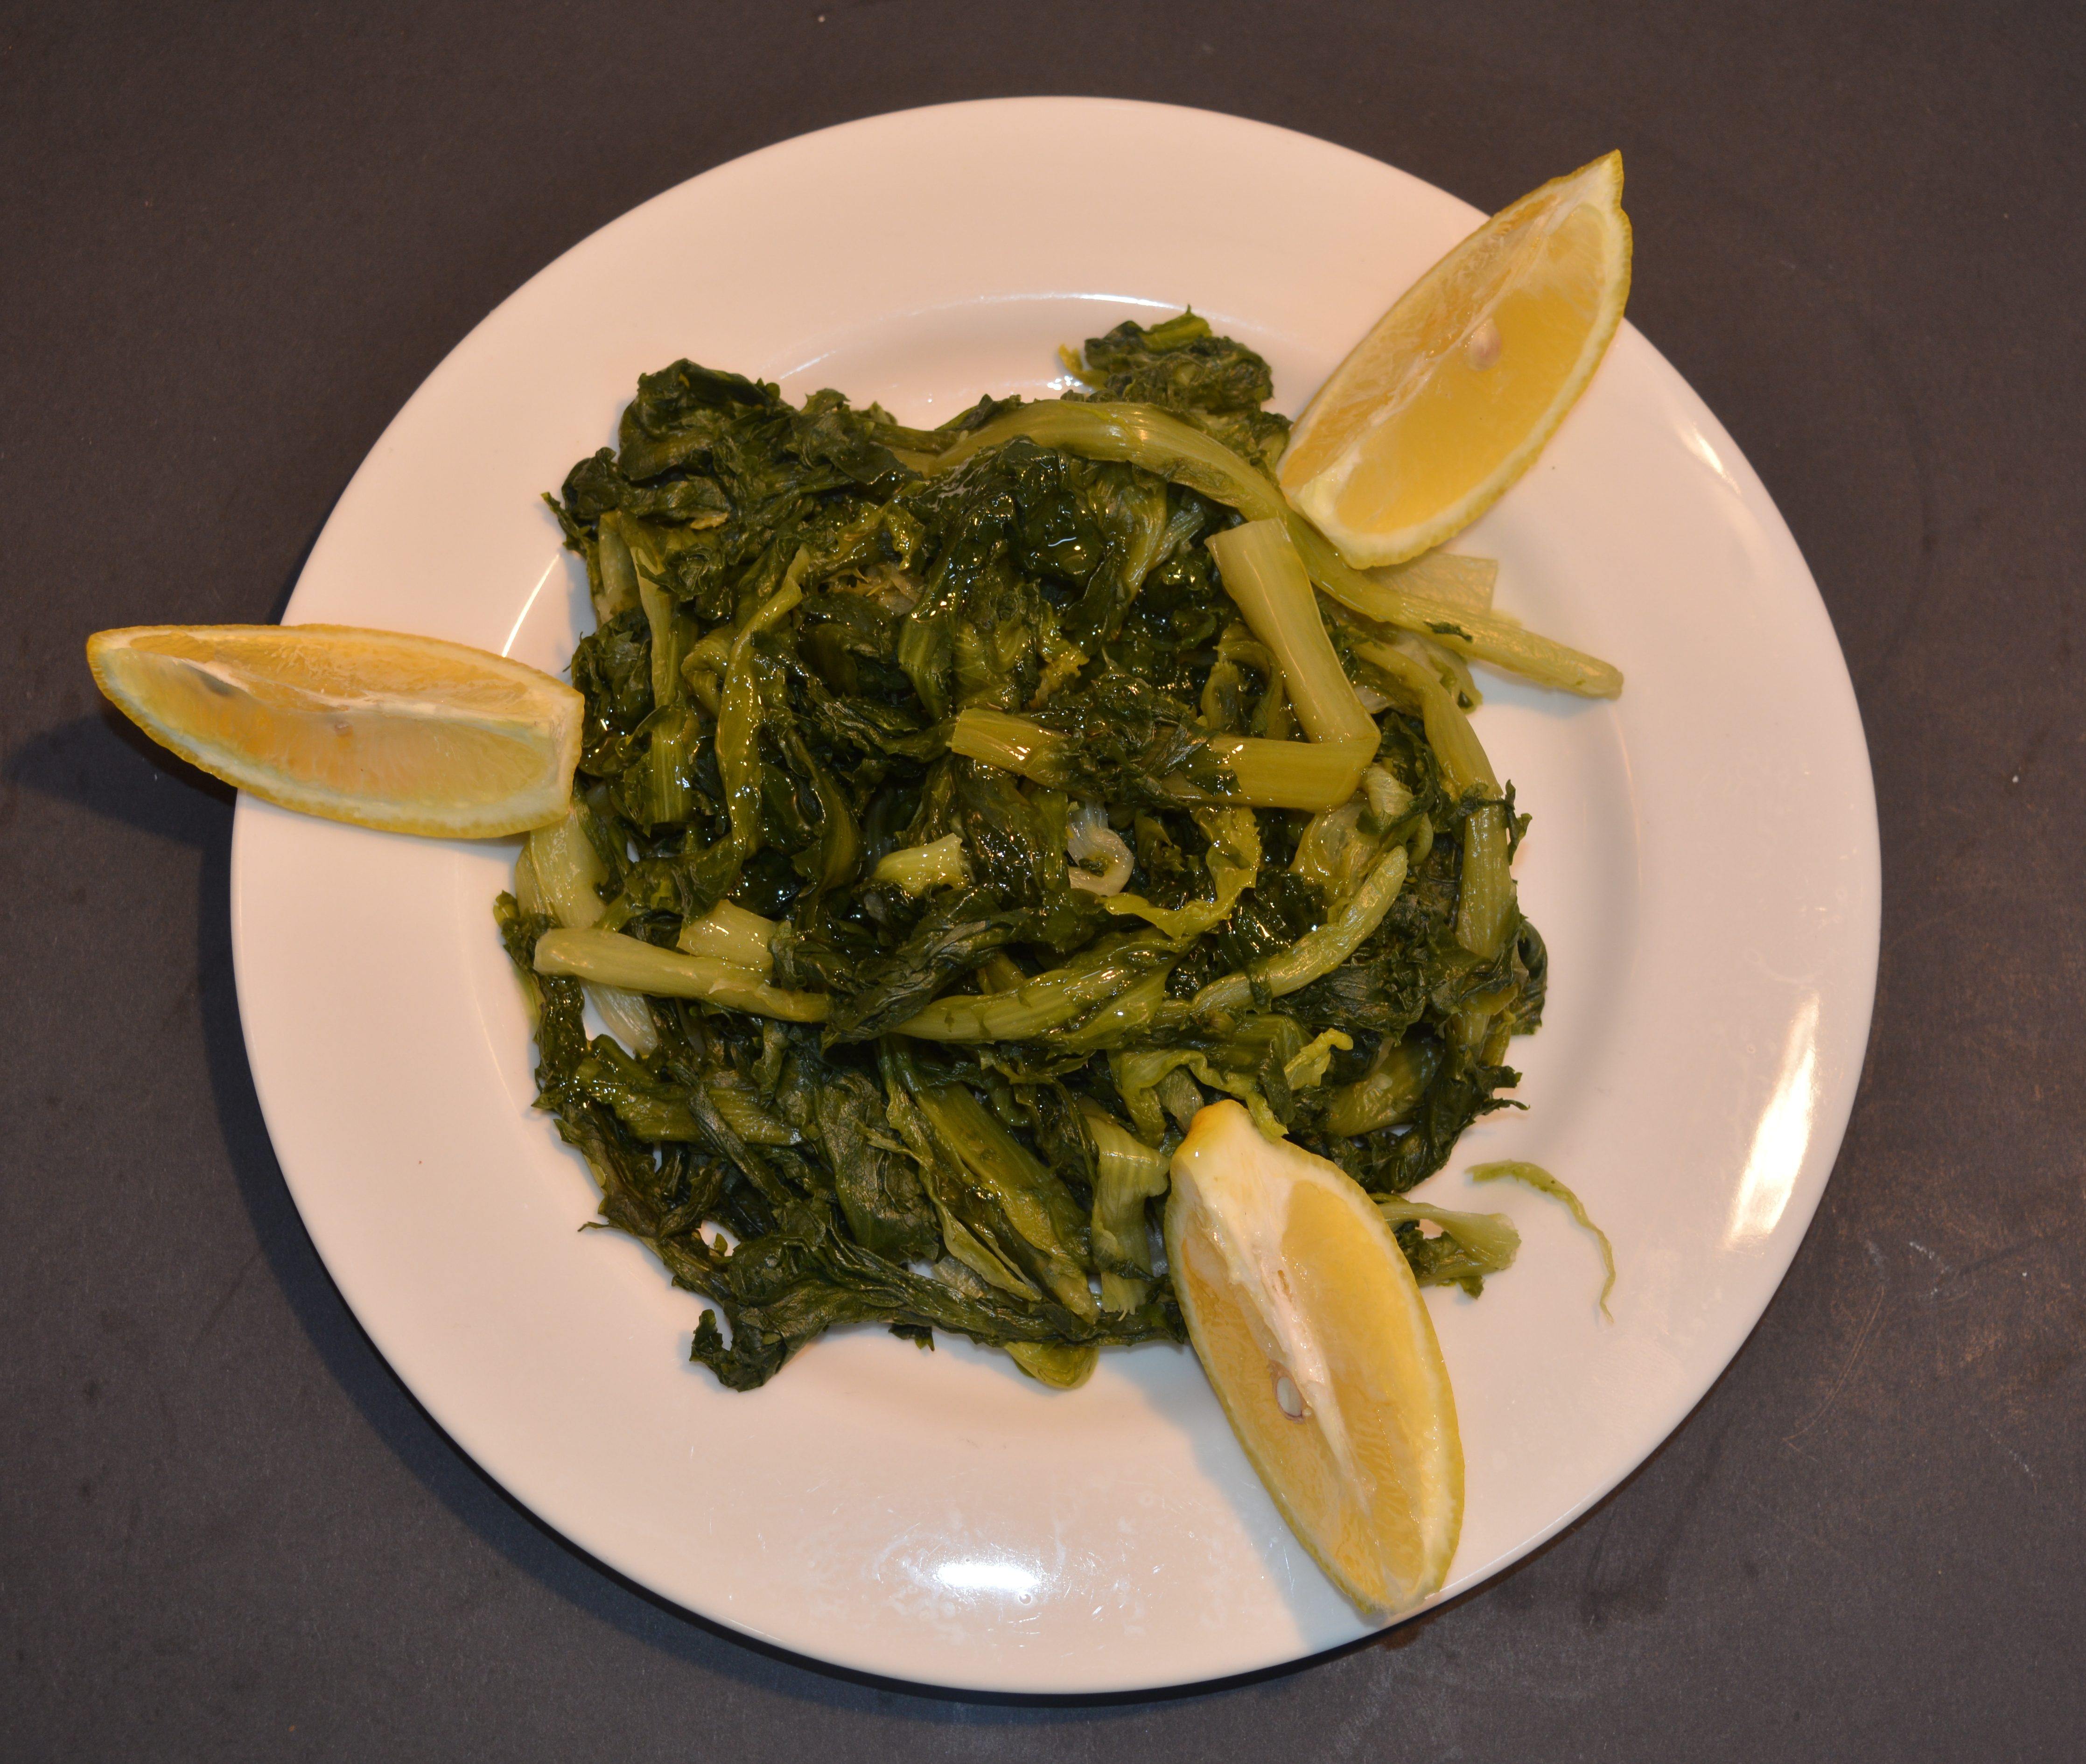 Horta - Endive Greens with olive oil and lemon.